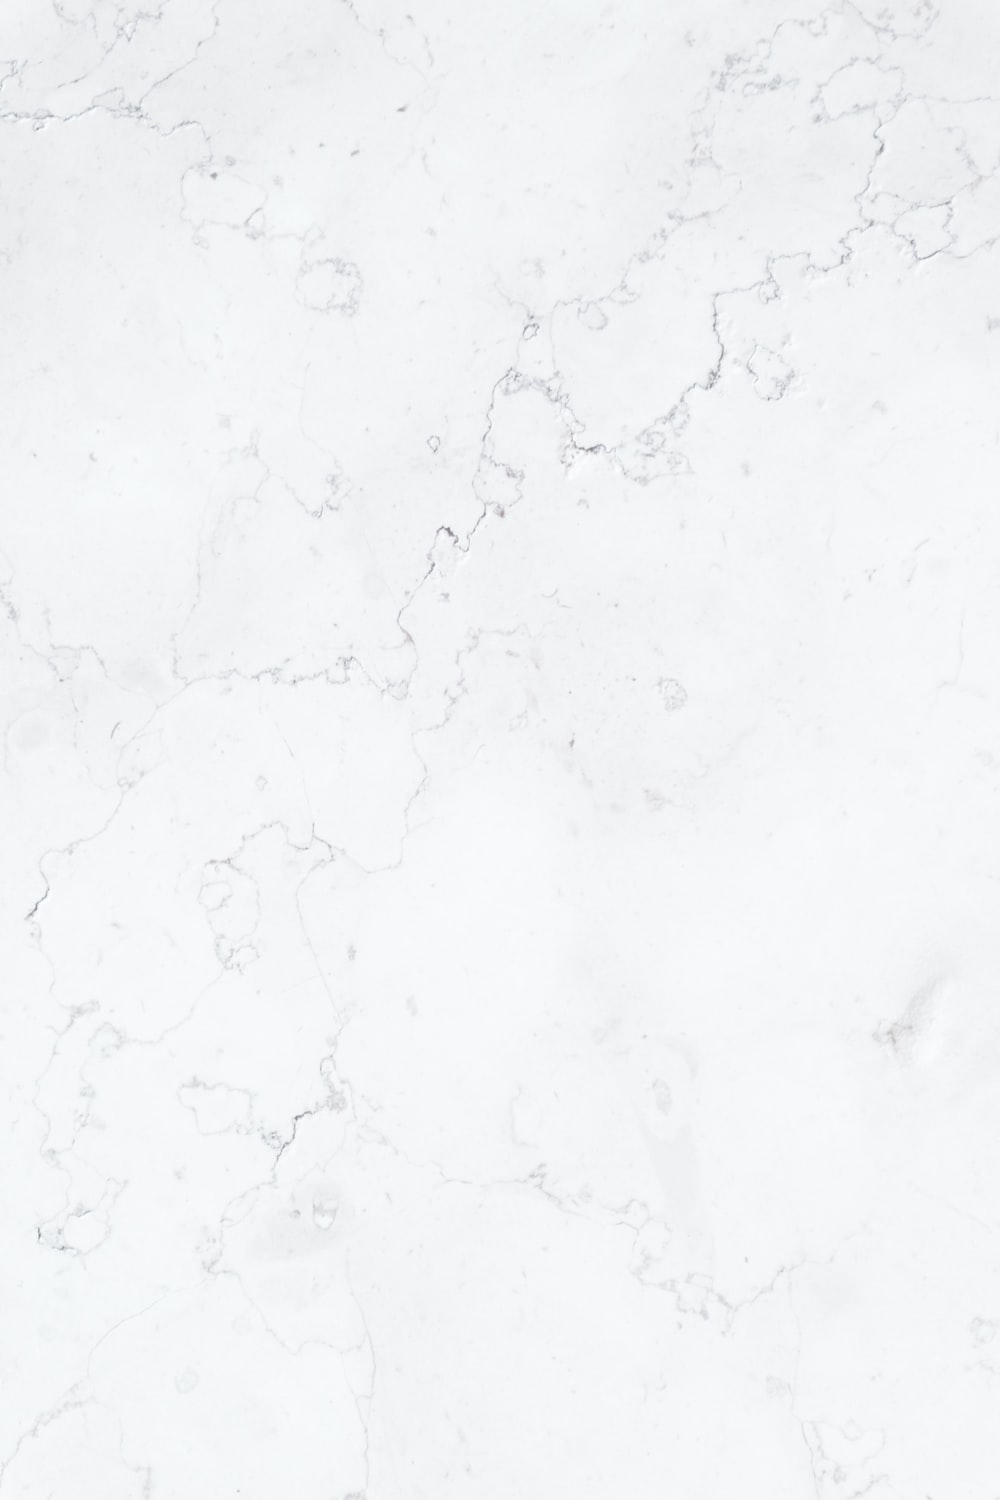 Marble Wallpapers Free Hd Download 500 Hq Unsplash We have a massive amount of hd images that will make your computer or smartphone look absolutely fresh. marble wallpapers free hd download